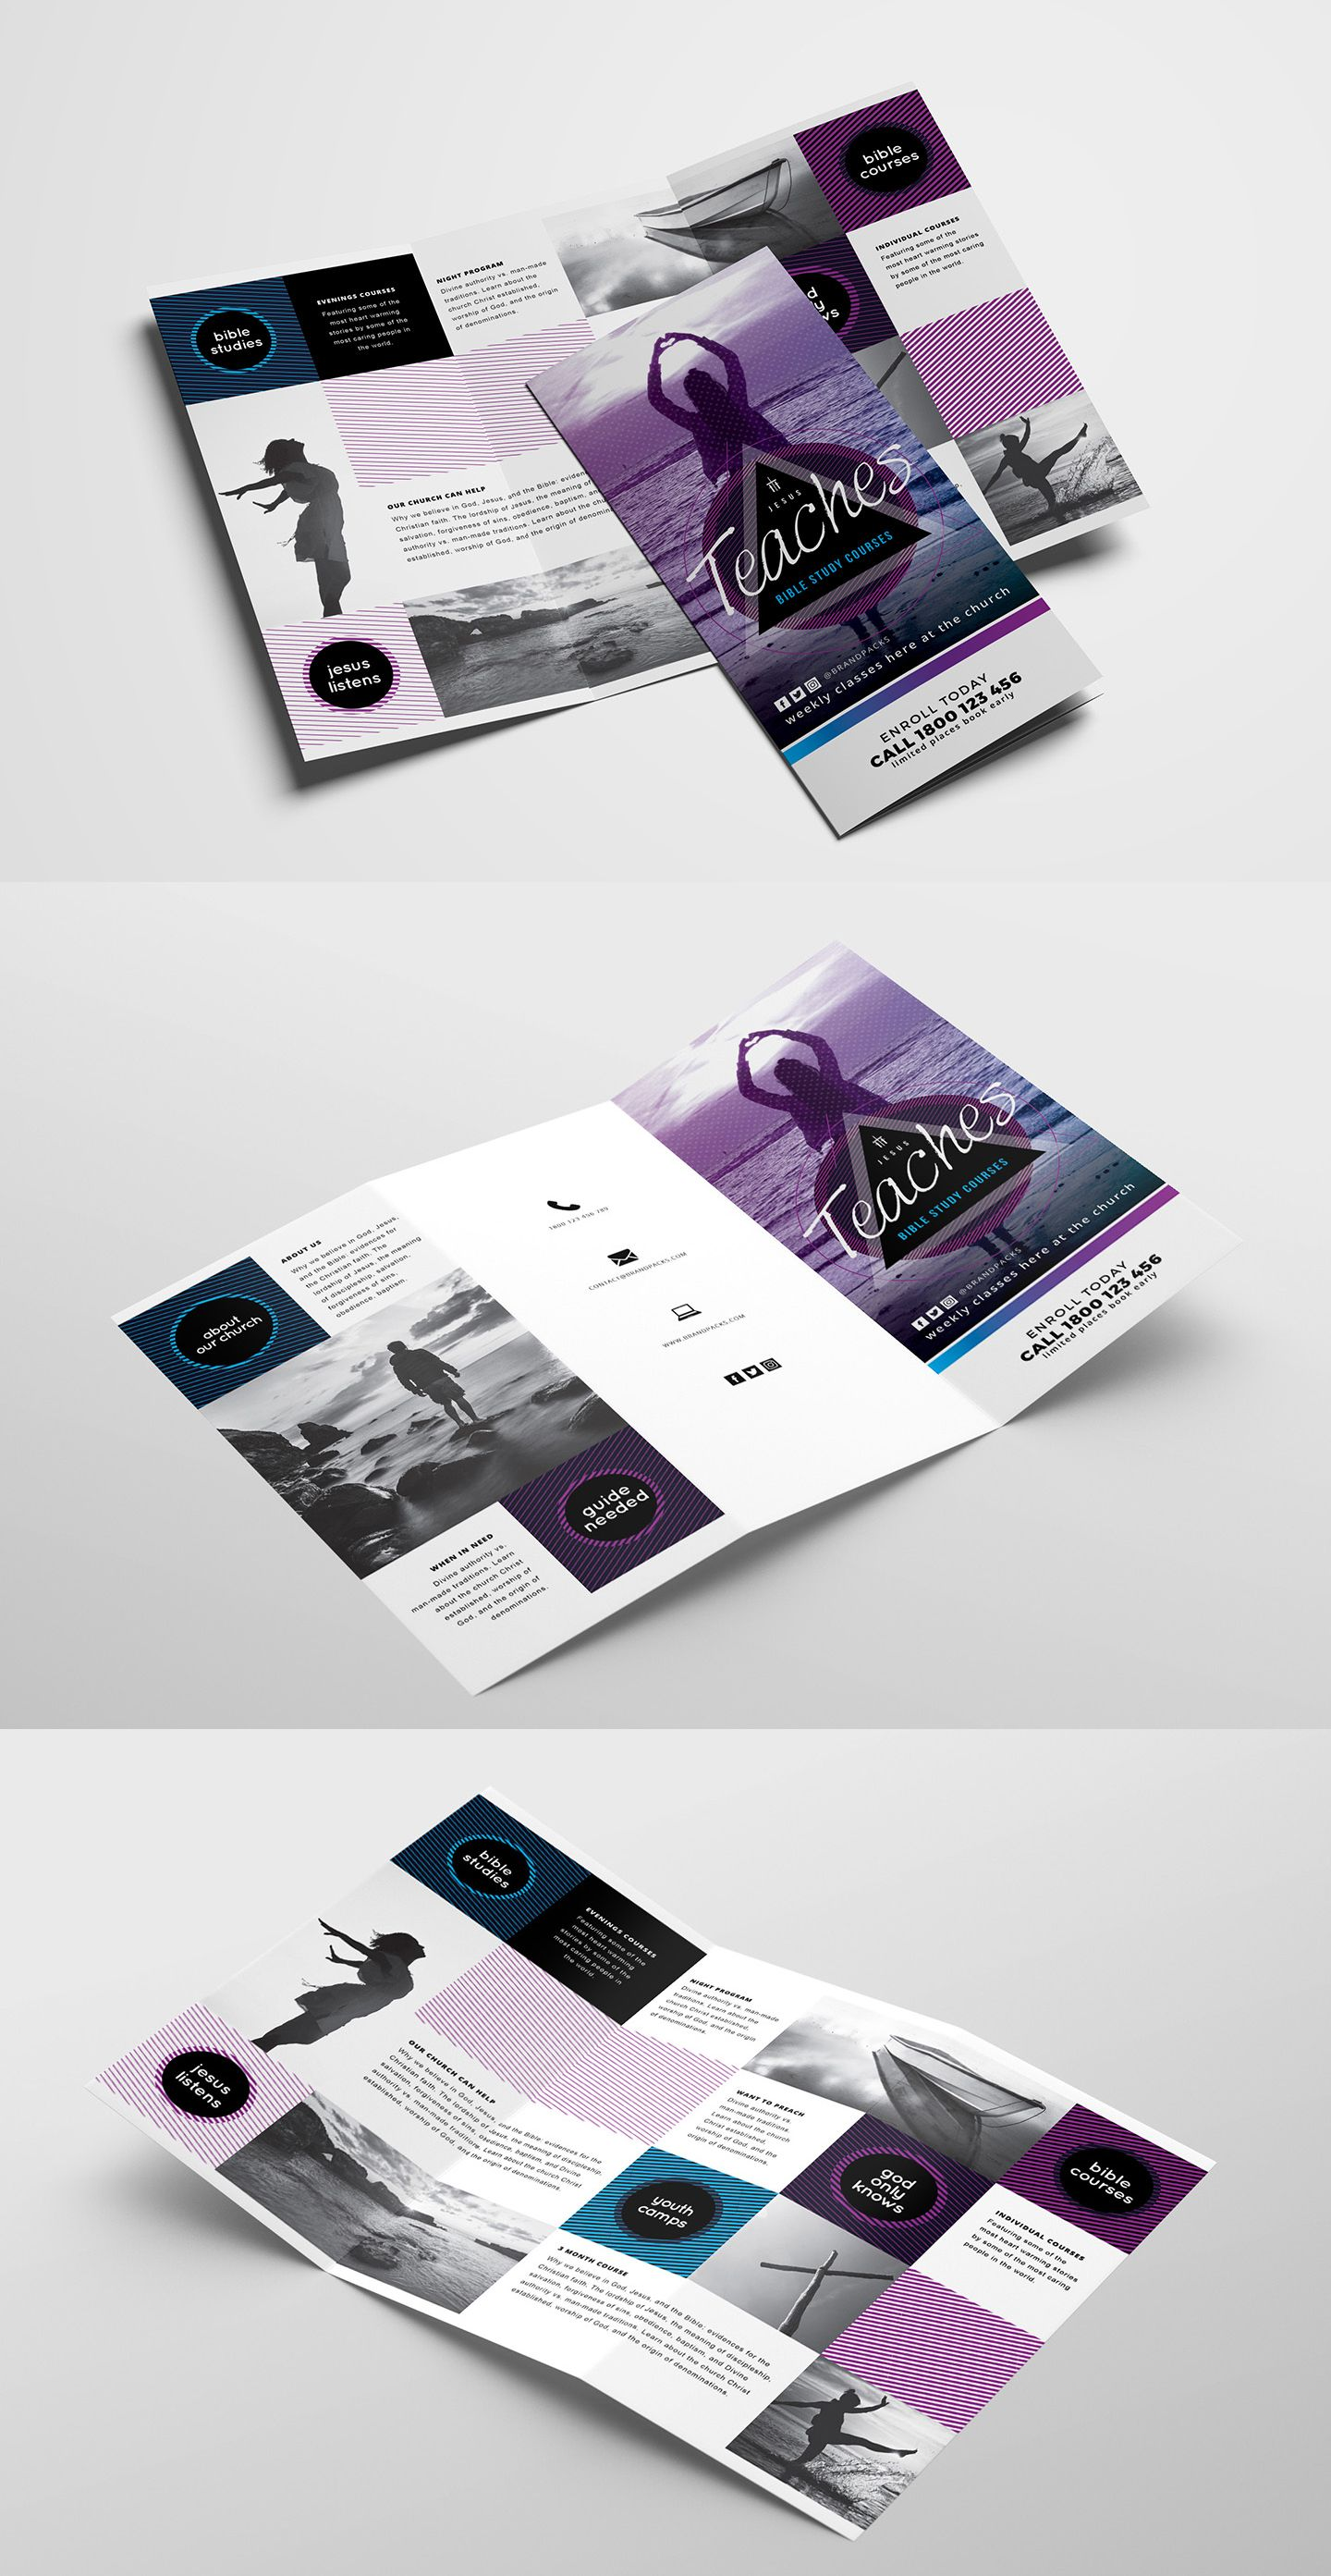 Free Church TriFold Brochure Template For Photoshop Illustrator - Photoshop tri fold brochure template free